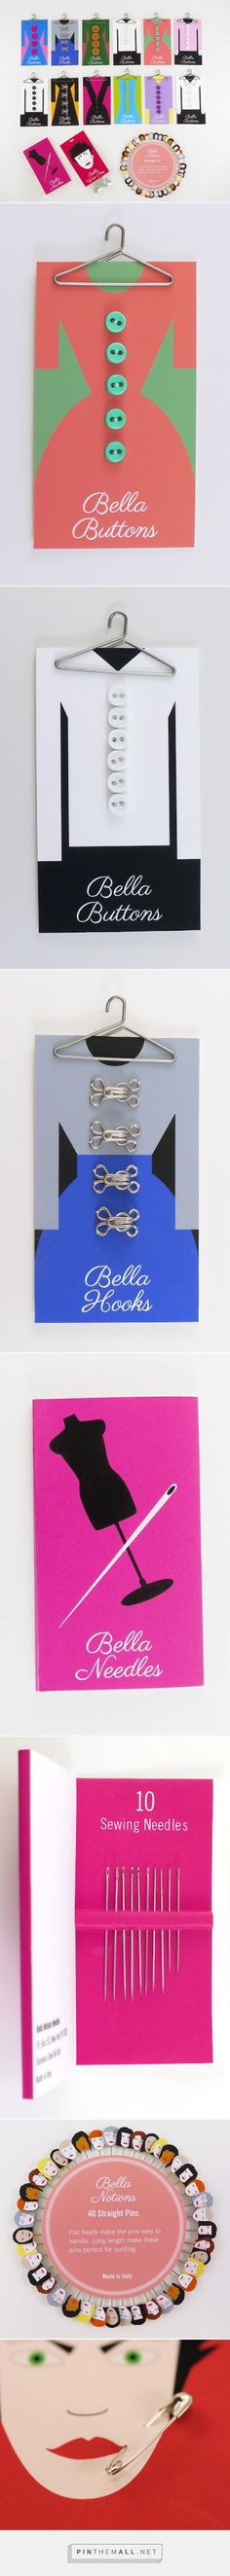 Bella Sewing Notions // Packaging Design for buttons, hooks, needles, sewing notions and pins. PD